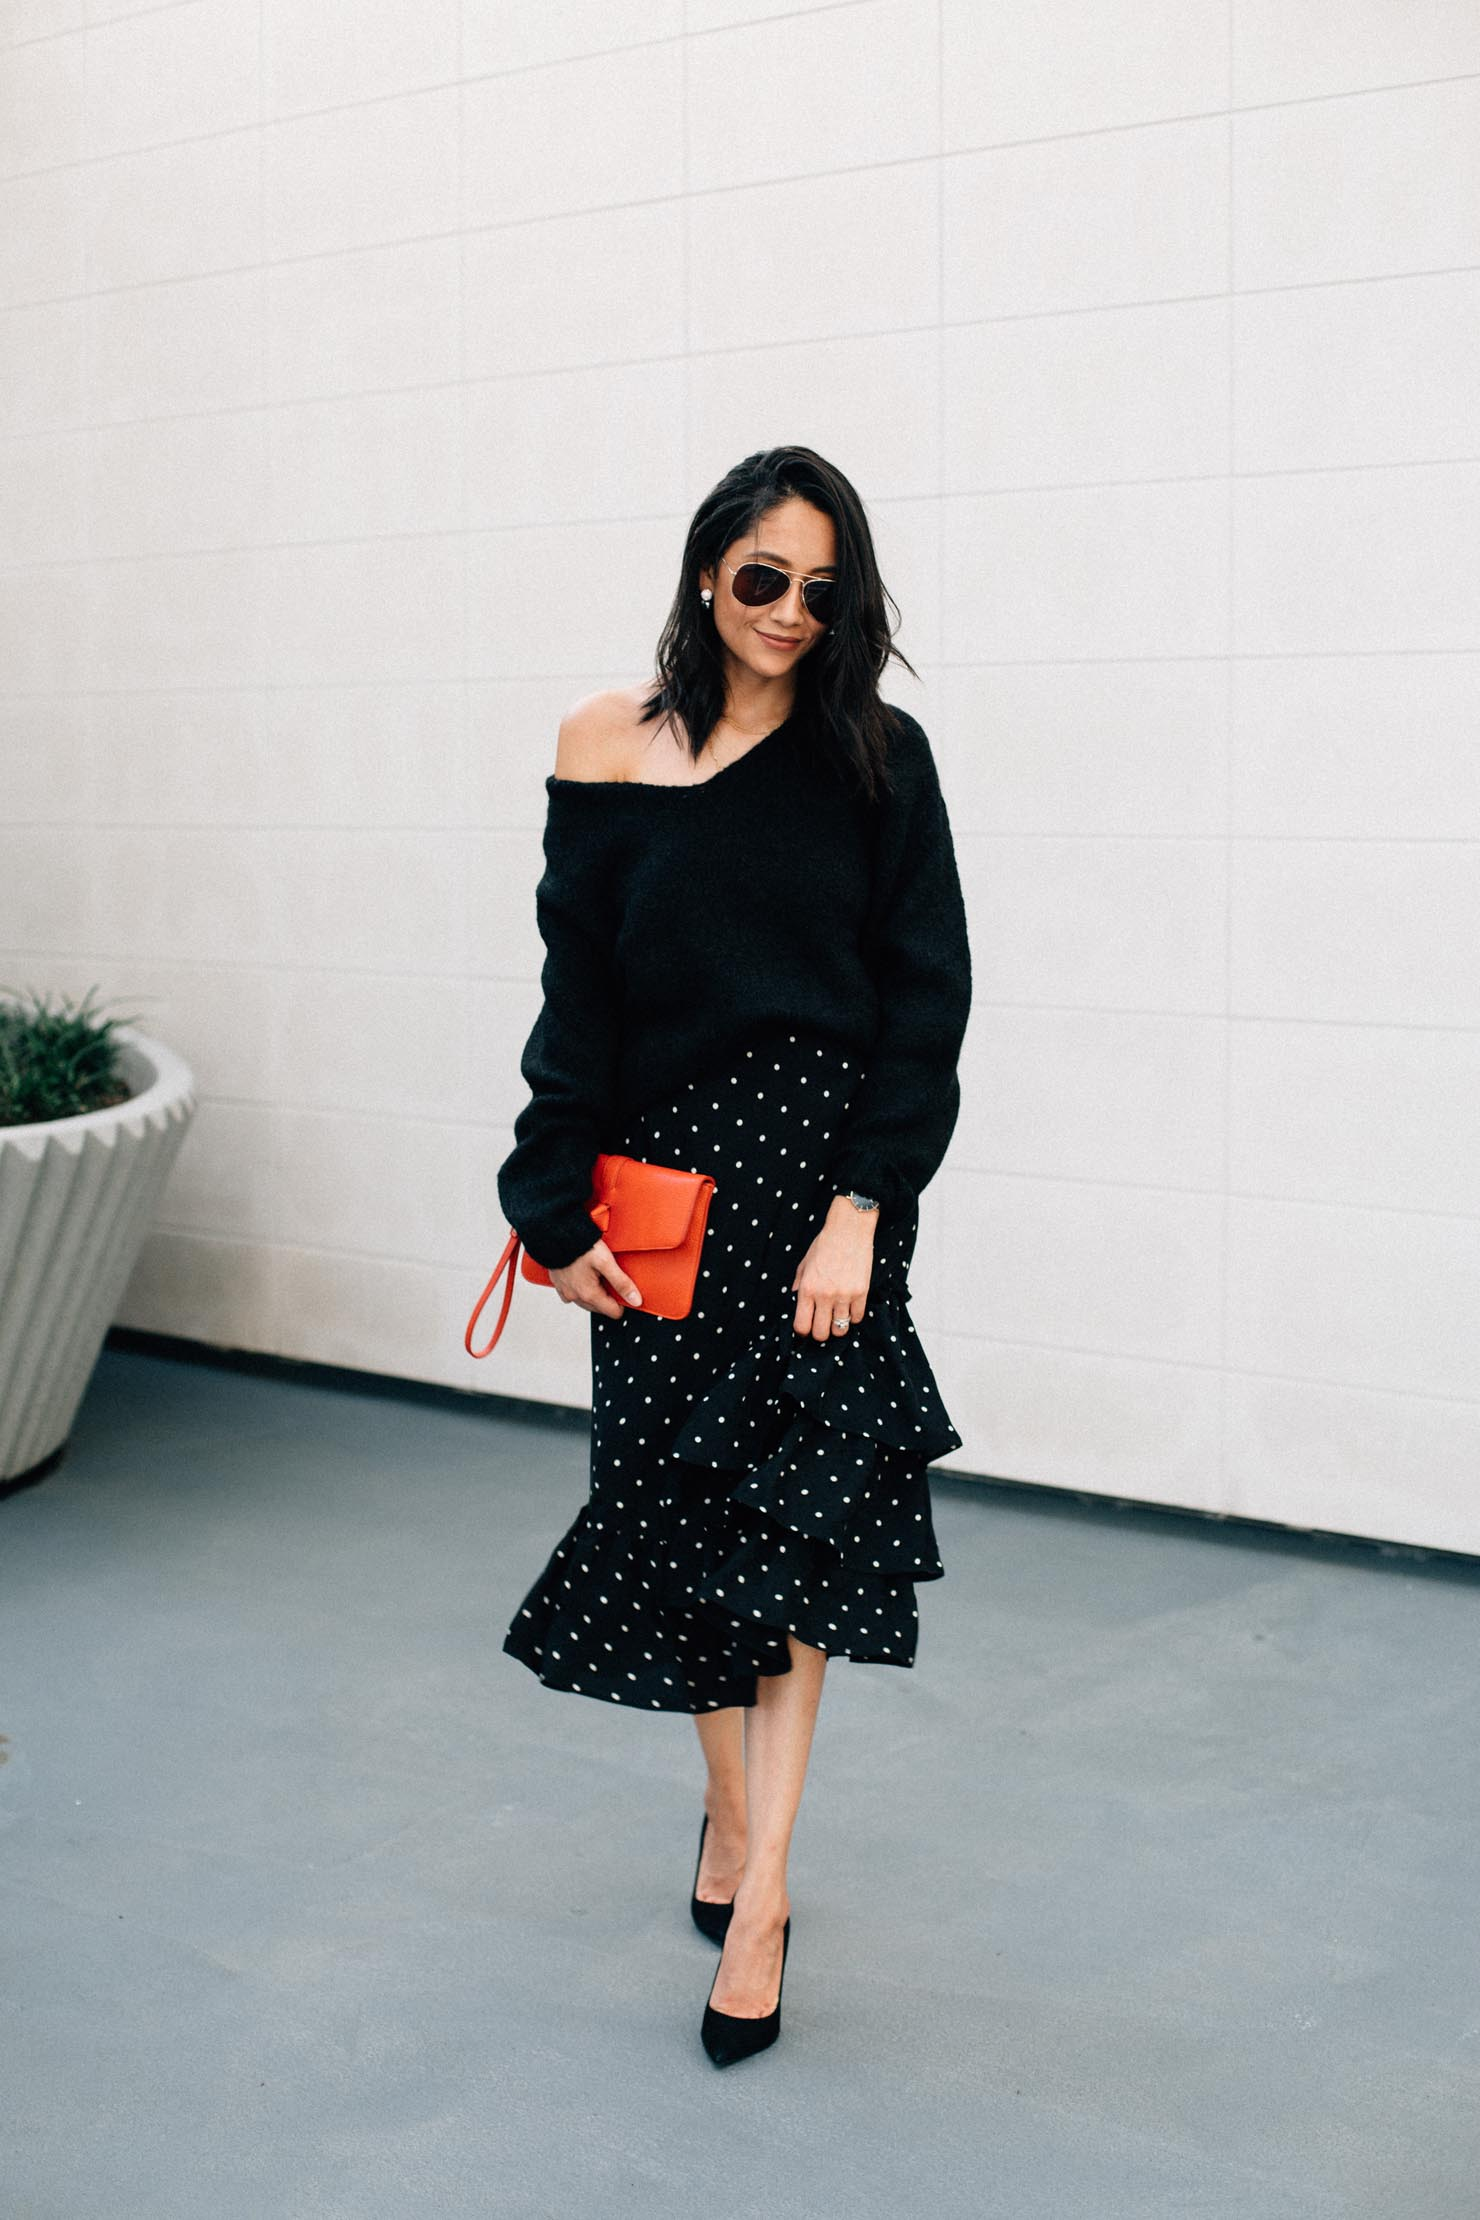 Fashion blogger Lilly Beltran of Daily Craving wearing a polka dot midi skirt with an oversized sweater for a Thanksgiving Day outfit idea